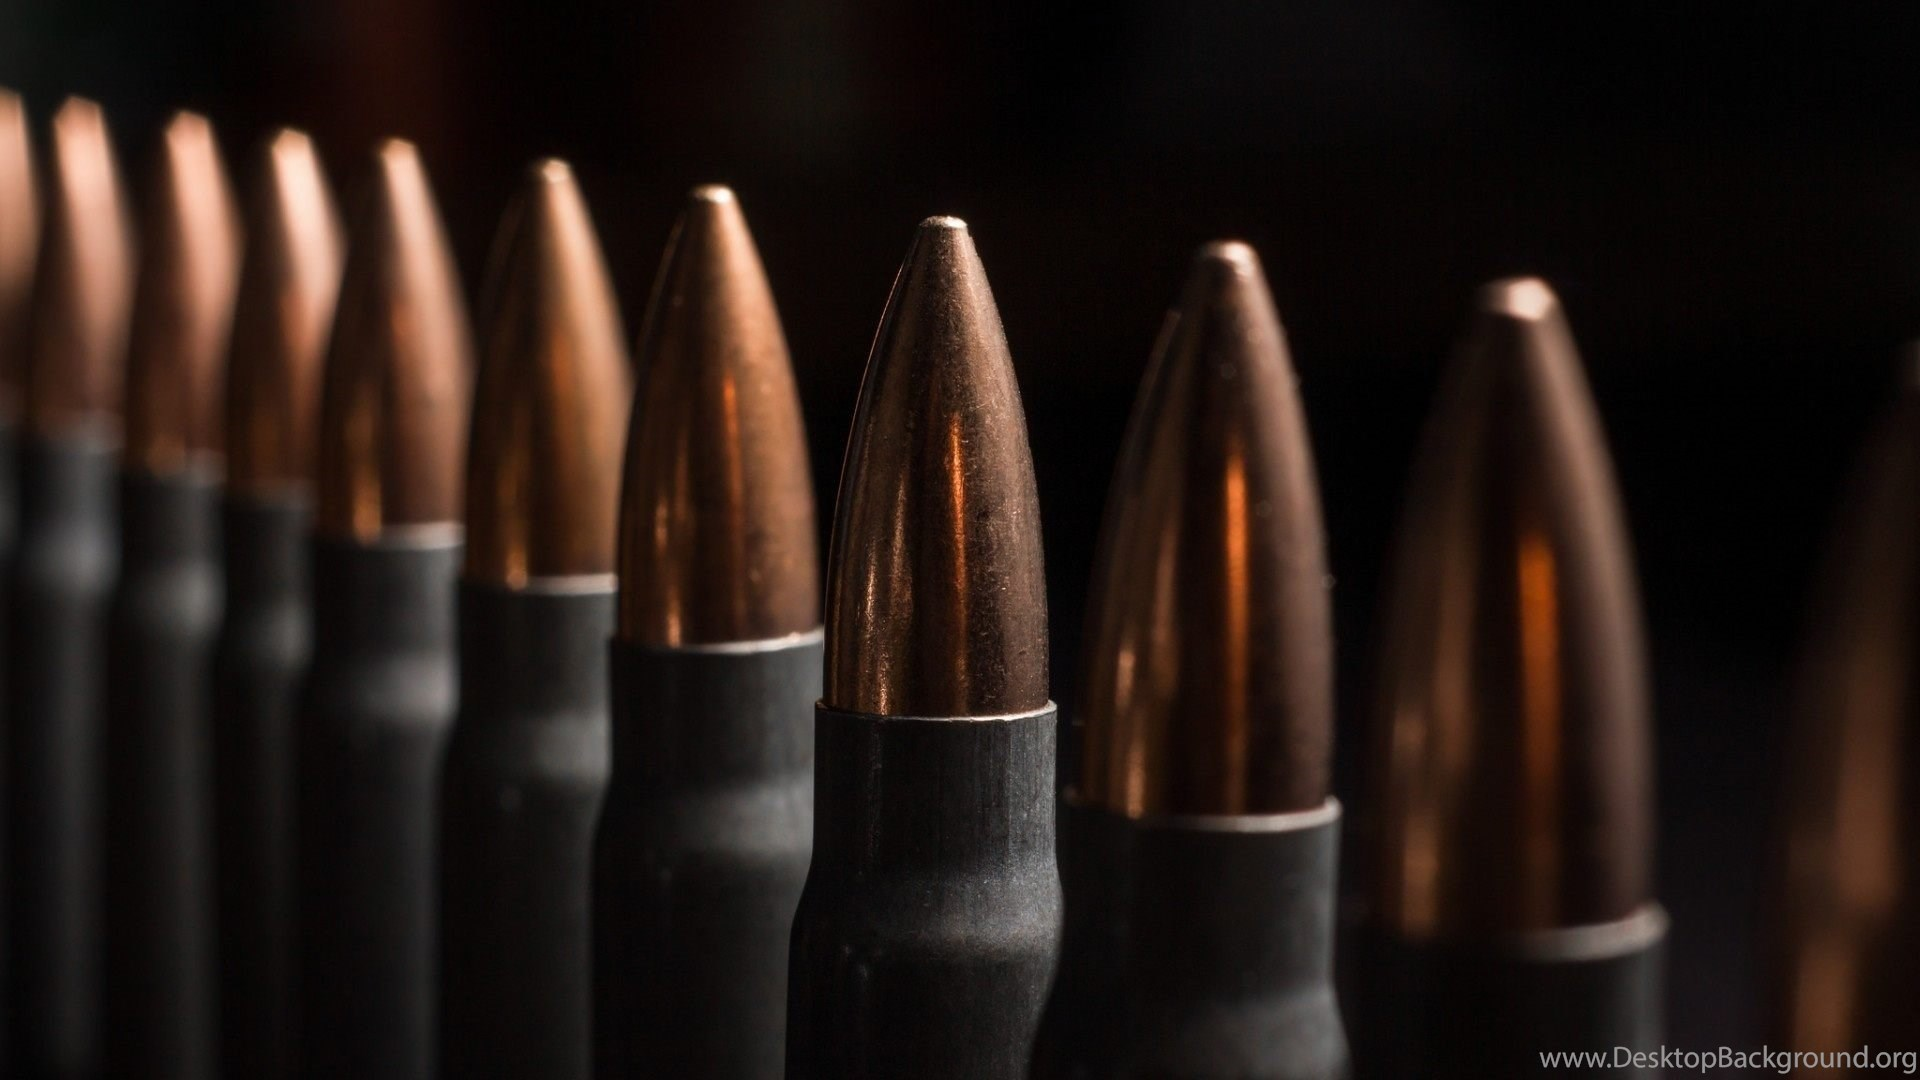 762x39 bullet wallpapers hd for desktop of gun bullets